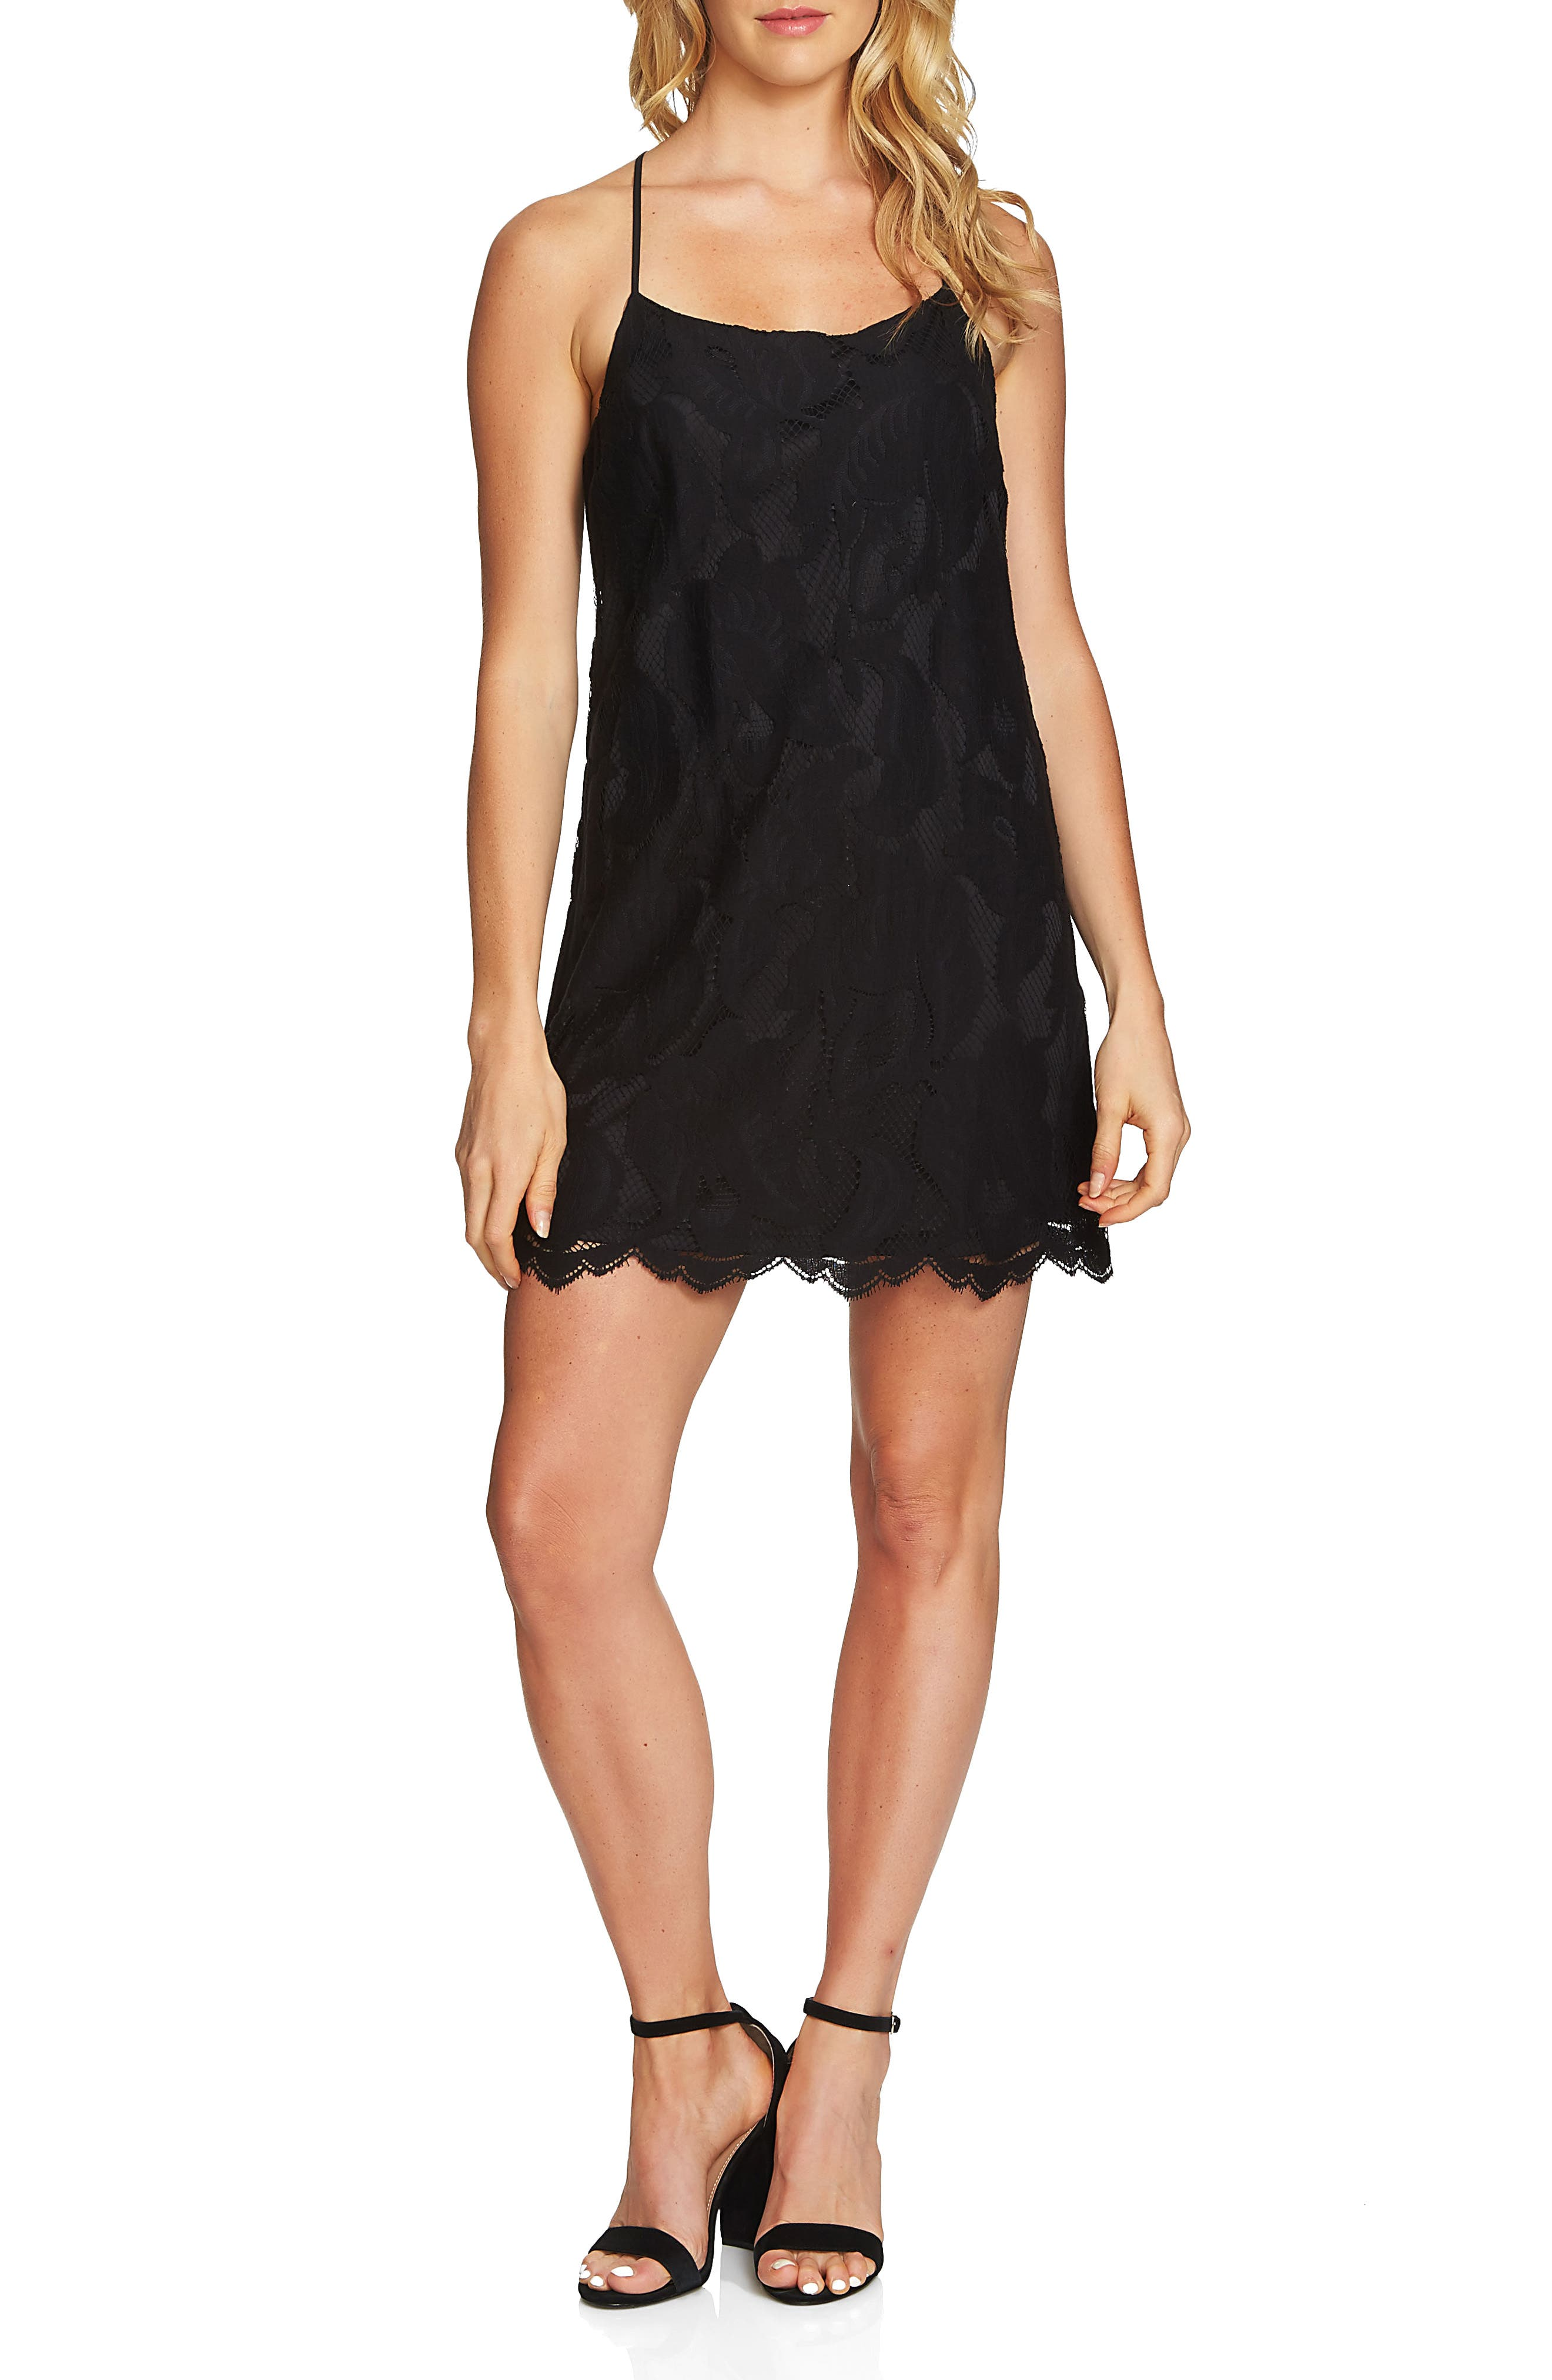 Main Image - 1.STATE Floral Lace Racerback Shift Dress